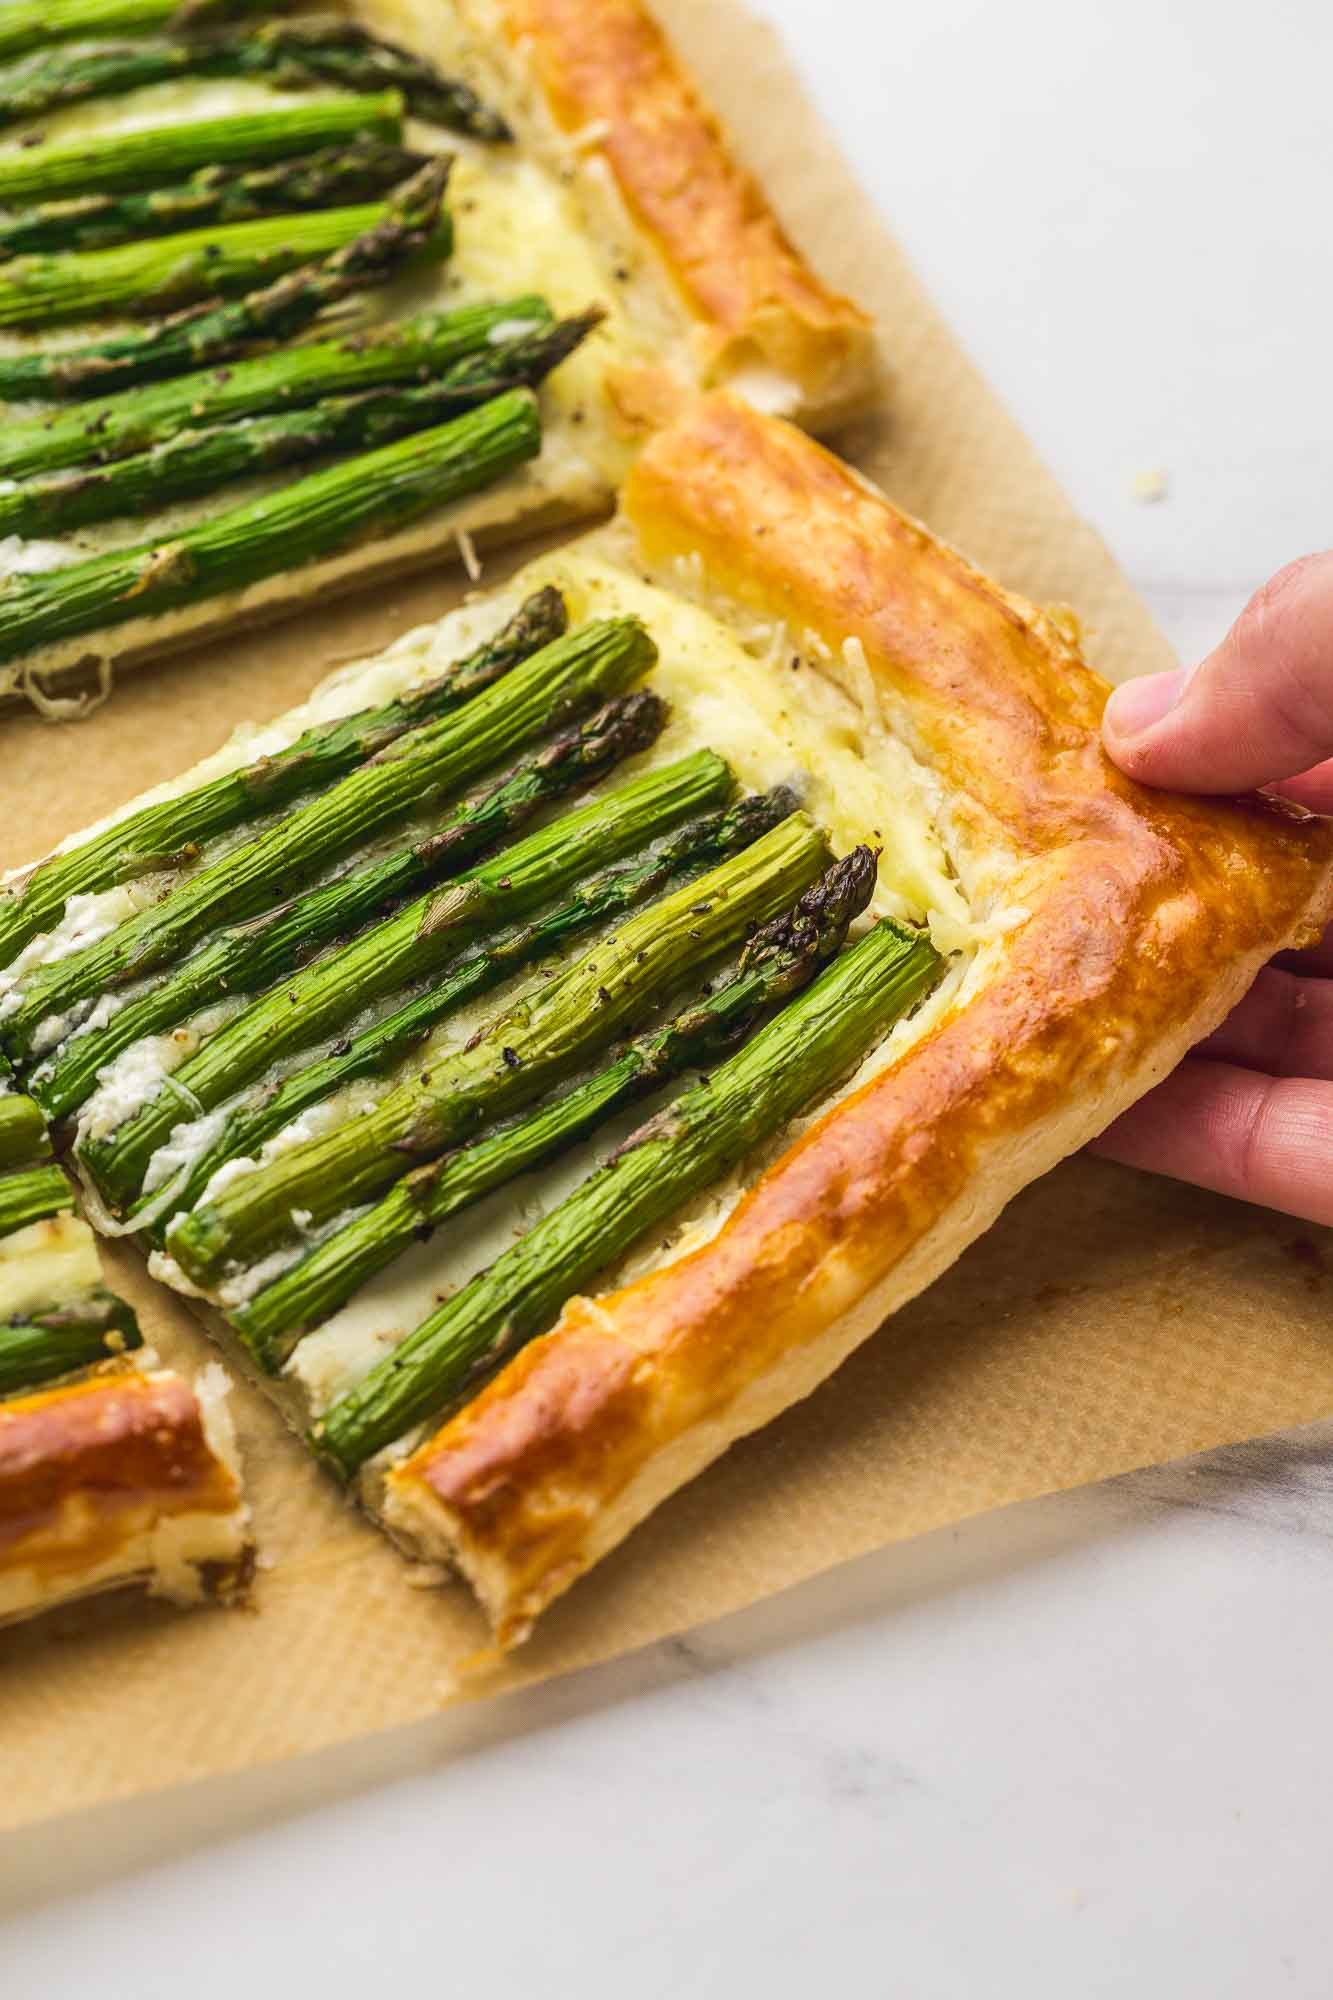 An asparagus tart square and a hand in motion